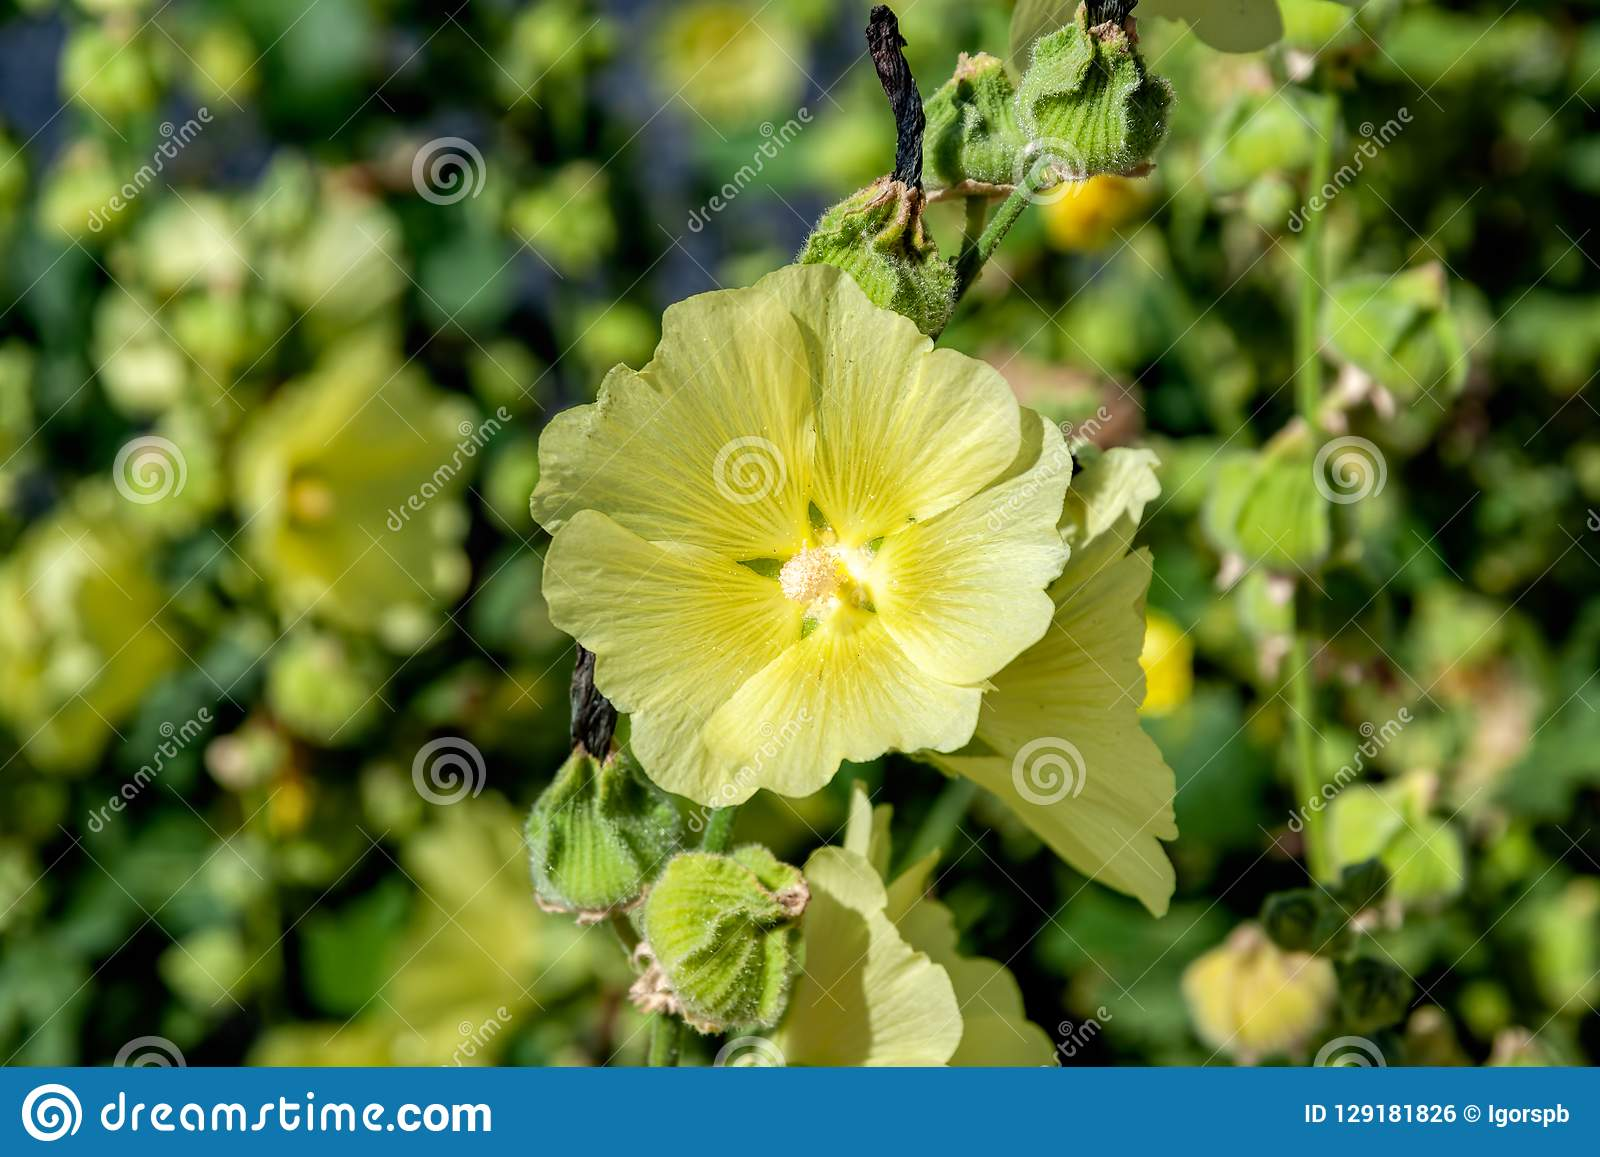 Pale Yellow Flowers And Seeds Capsules Of Blooming Hollyhock Al Stock Photo Image Of Botanic Landscape 129181826,Plastic Emulsion Paint Price In Delhi